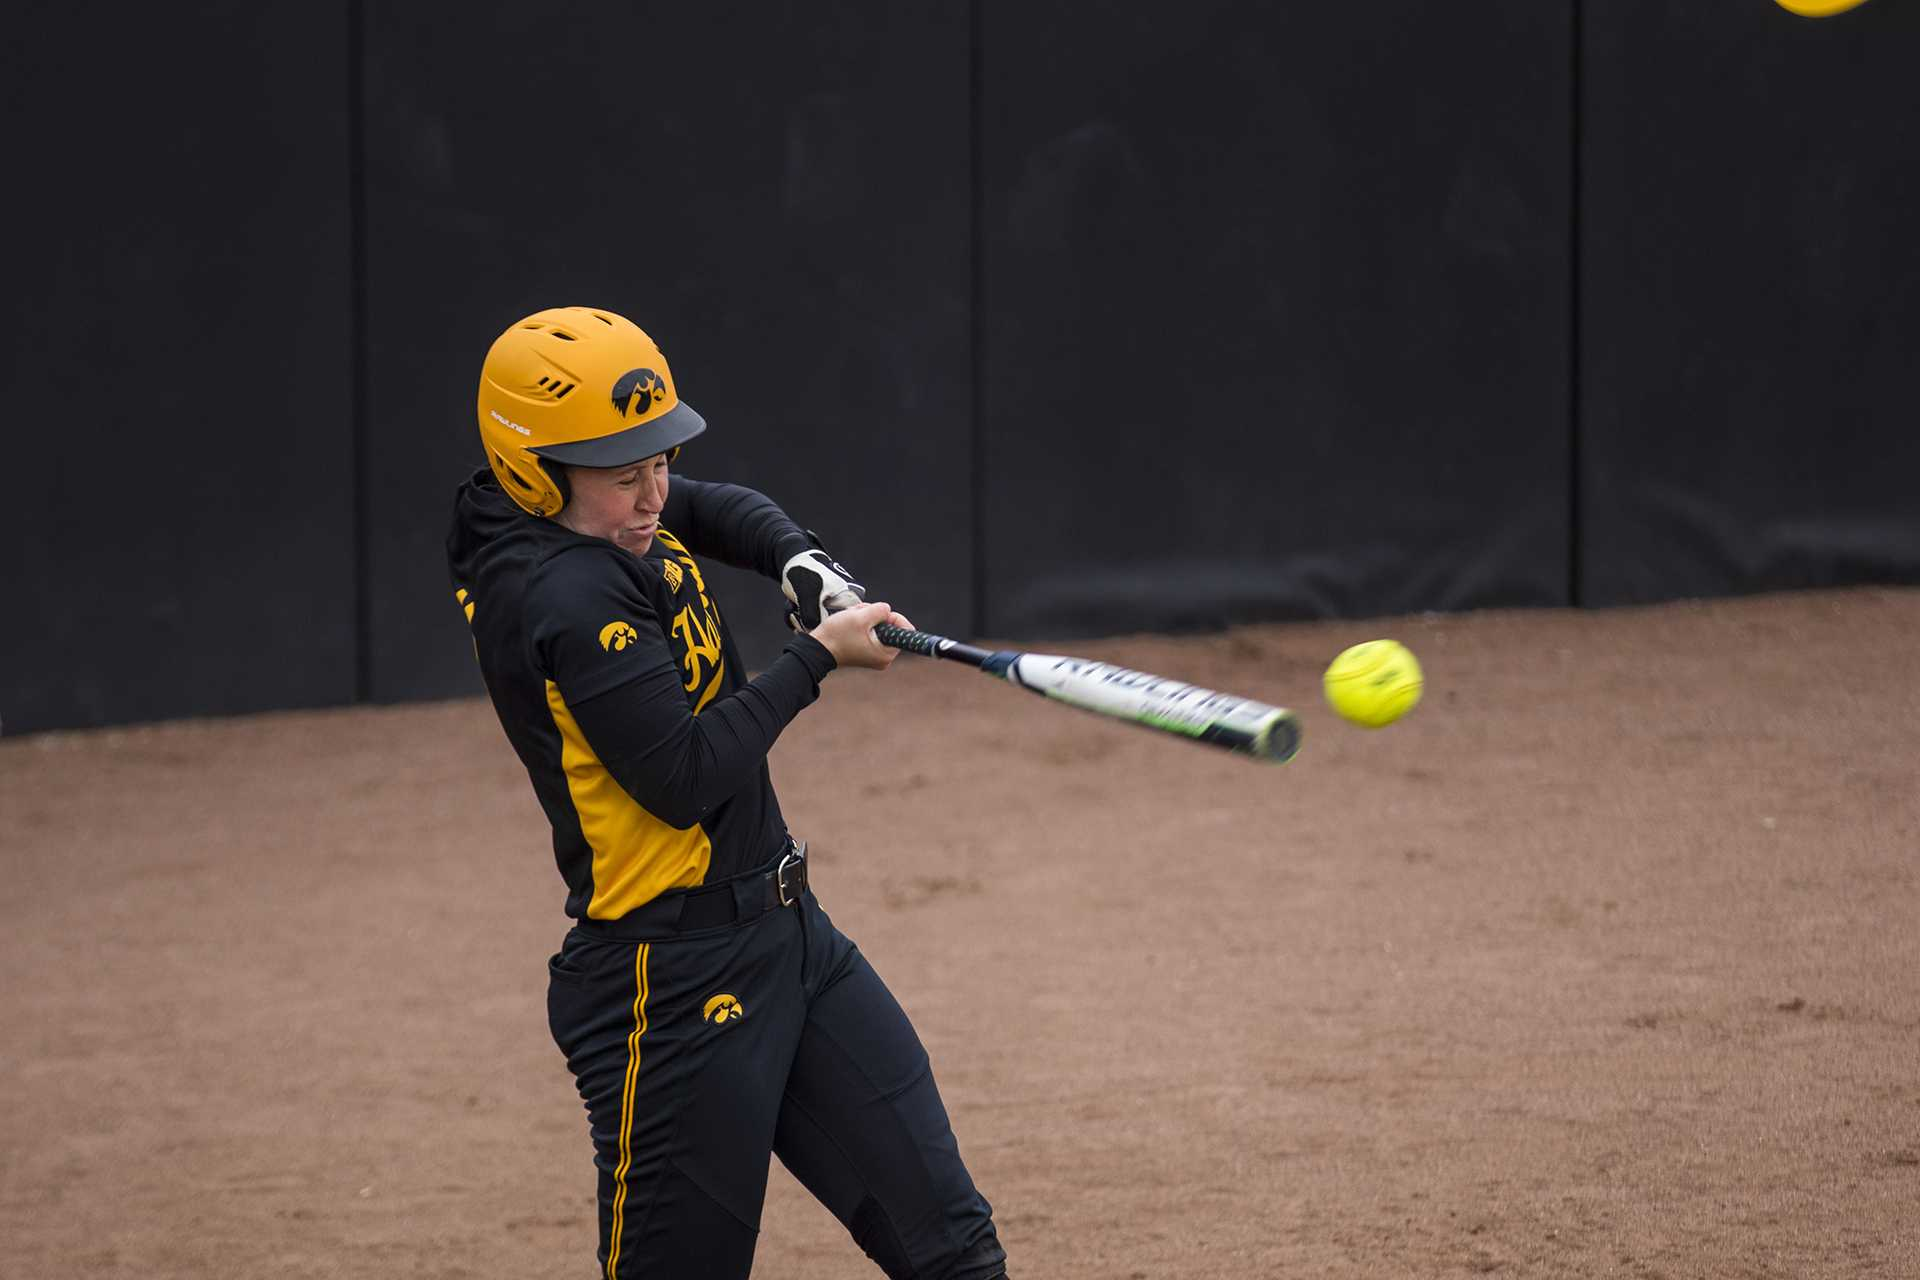 Iowa's Mallory Kilian hits a ball during the Iowa/Wisconsin softball game at Bob Pearl Field  on Sunday, April 8, 2018. The Hawkeyes defeated the Badgers in the third game of the series, 5-3. (Lily Smith/The Daily Iowan)